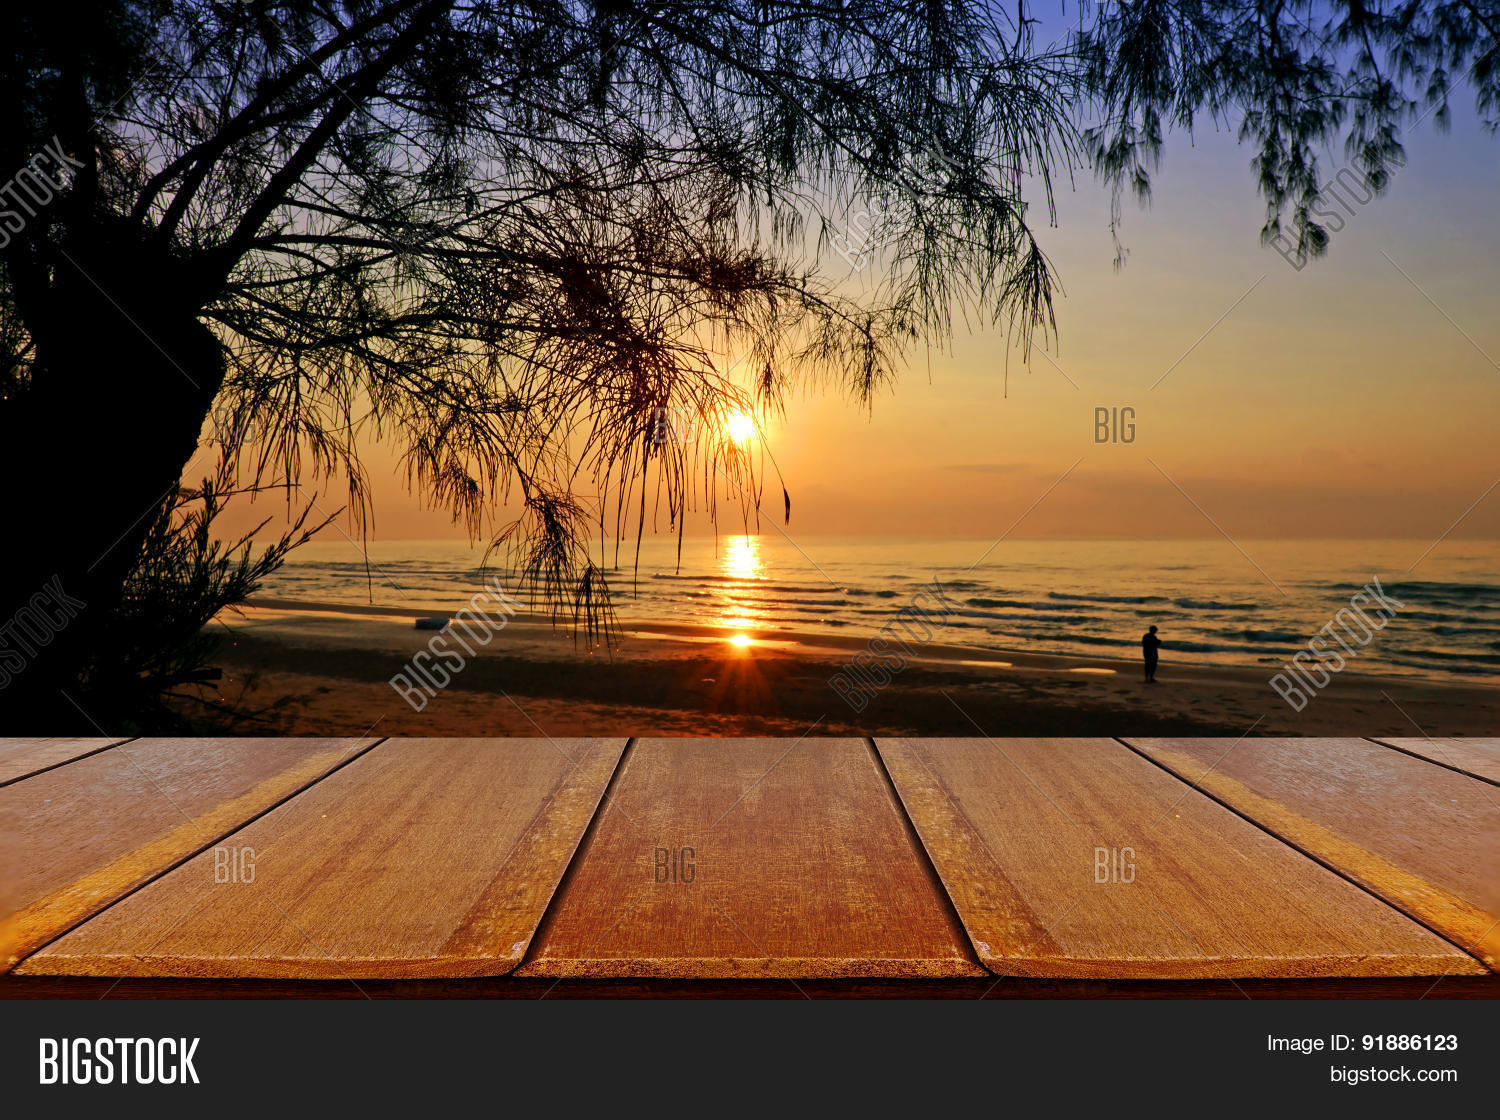 Outdoor Picnic Background Wooden Image Amp Photo Bigstock